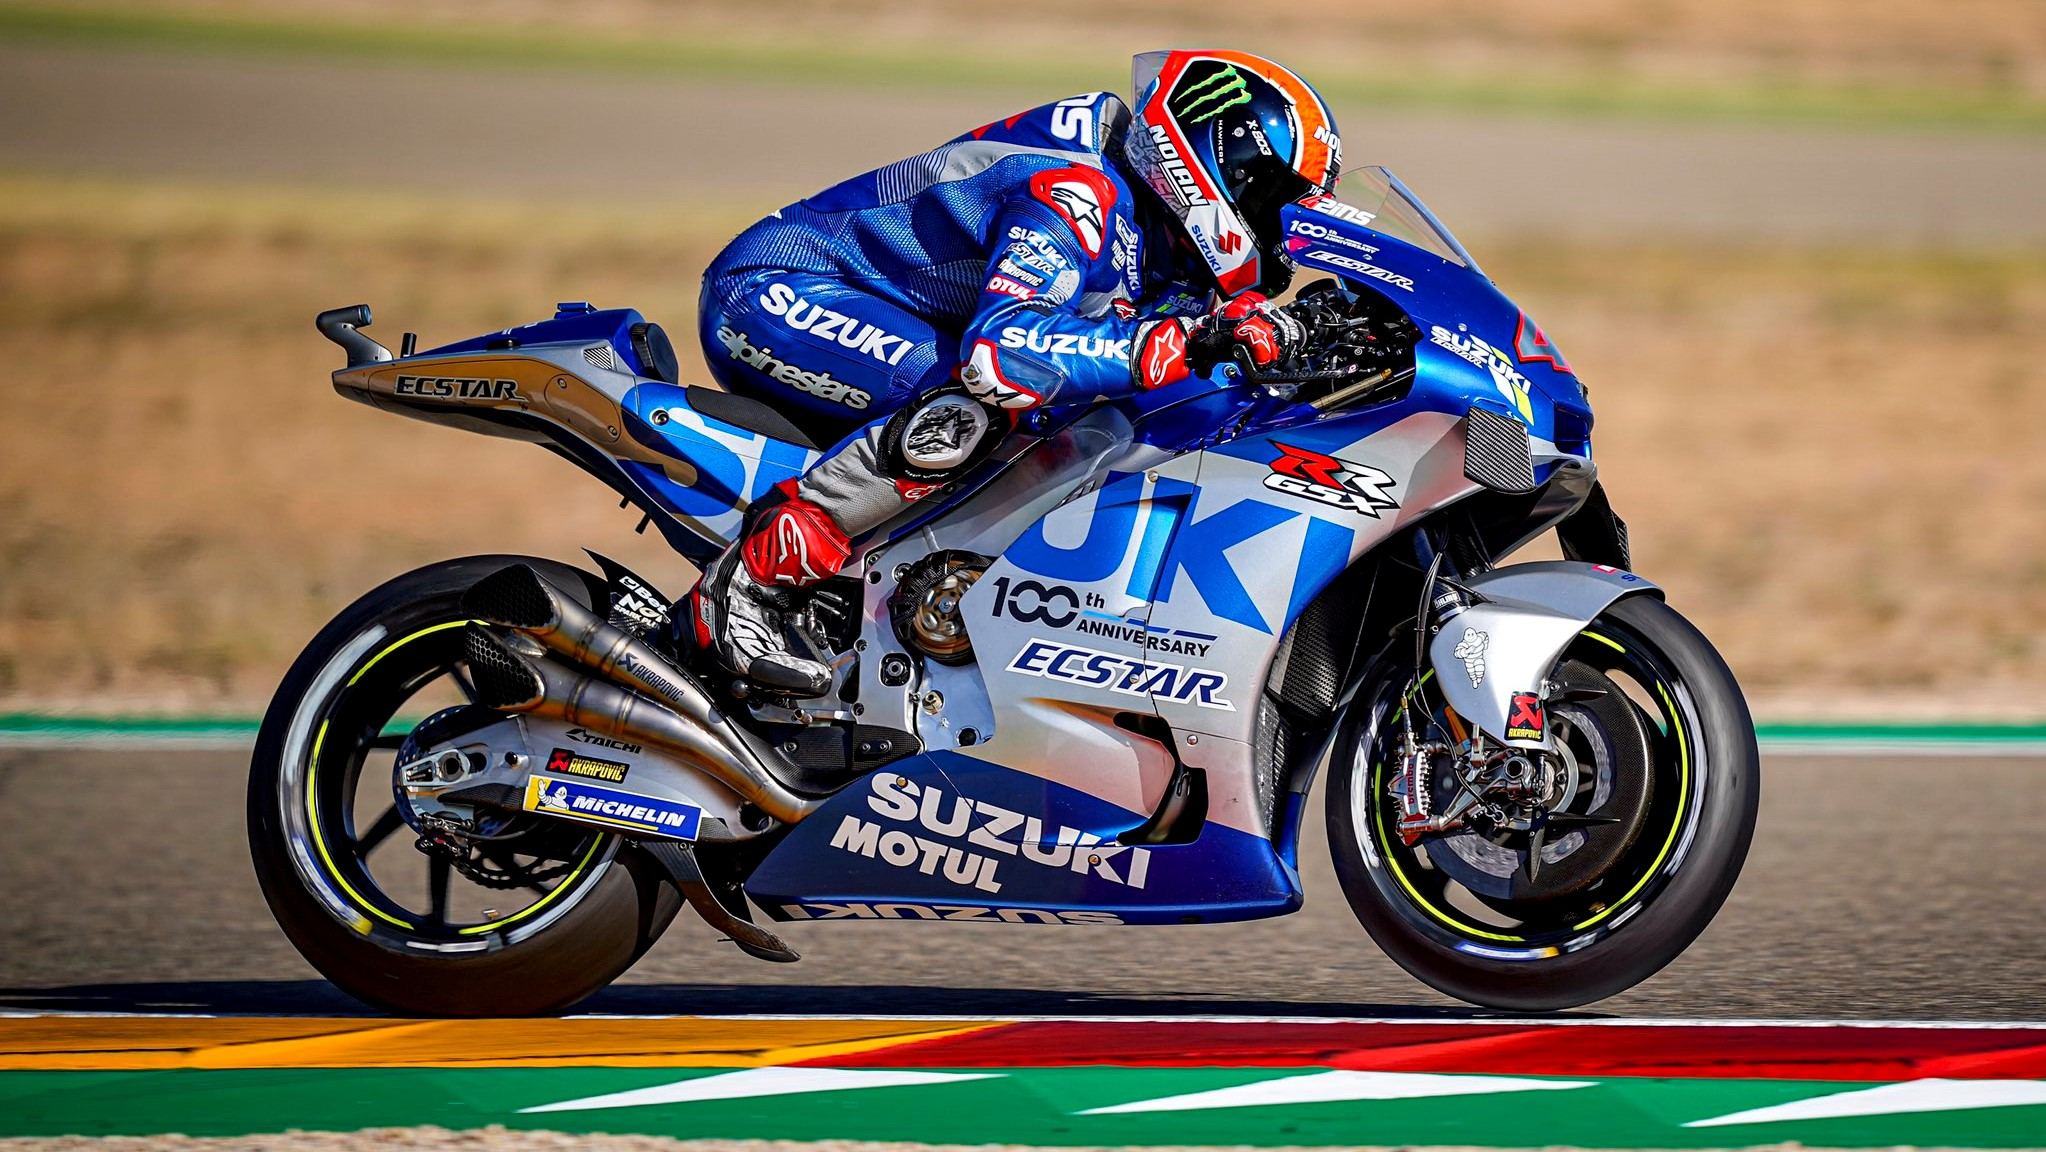 Grand Prix d'Aragon - Alex Rins